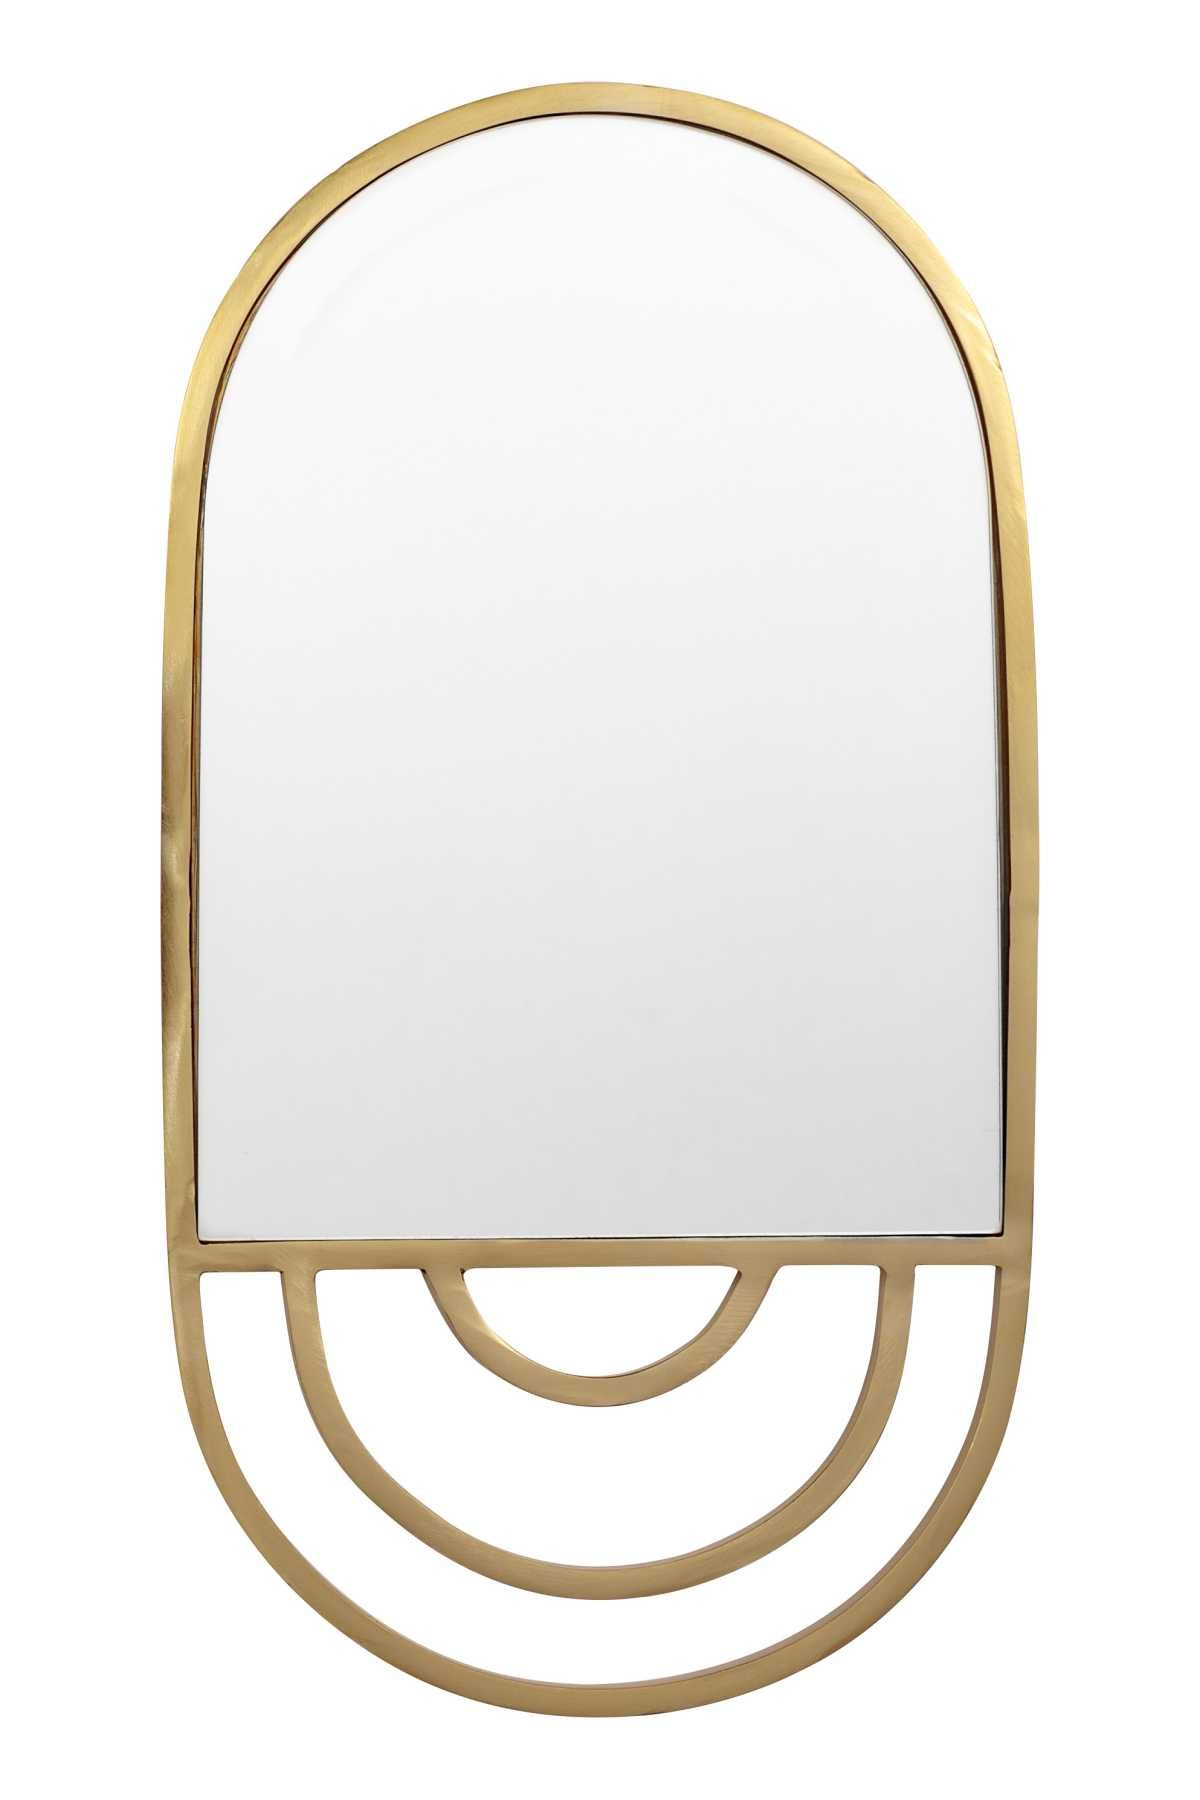 Gold Colored Oval Mirror In Glass With A Metal Frame Hanger At Back Size 9 1 4 X 17 1 4 In Metal Frame Mirror Mirror Frames Tile Mirror Frame